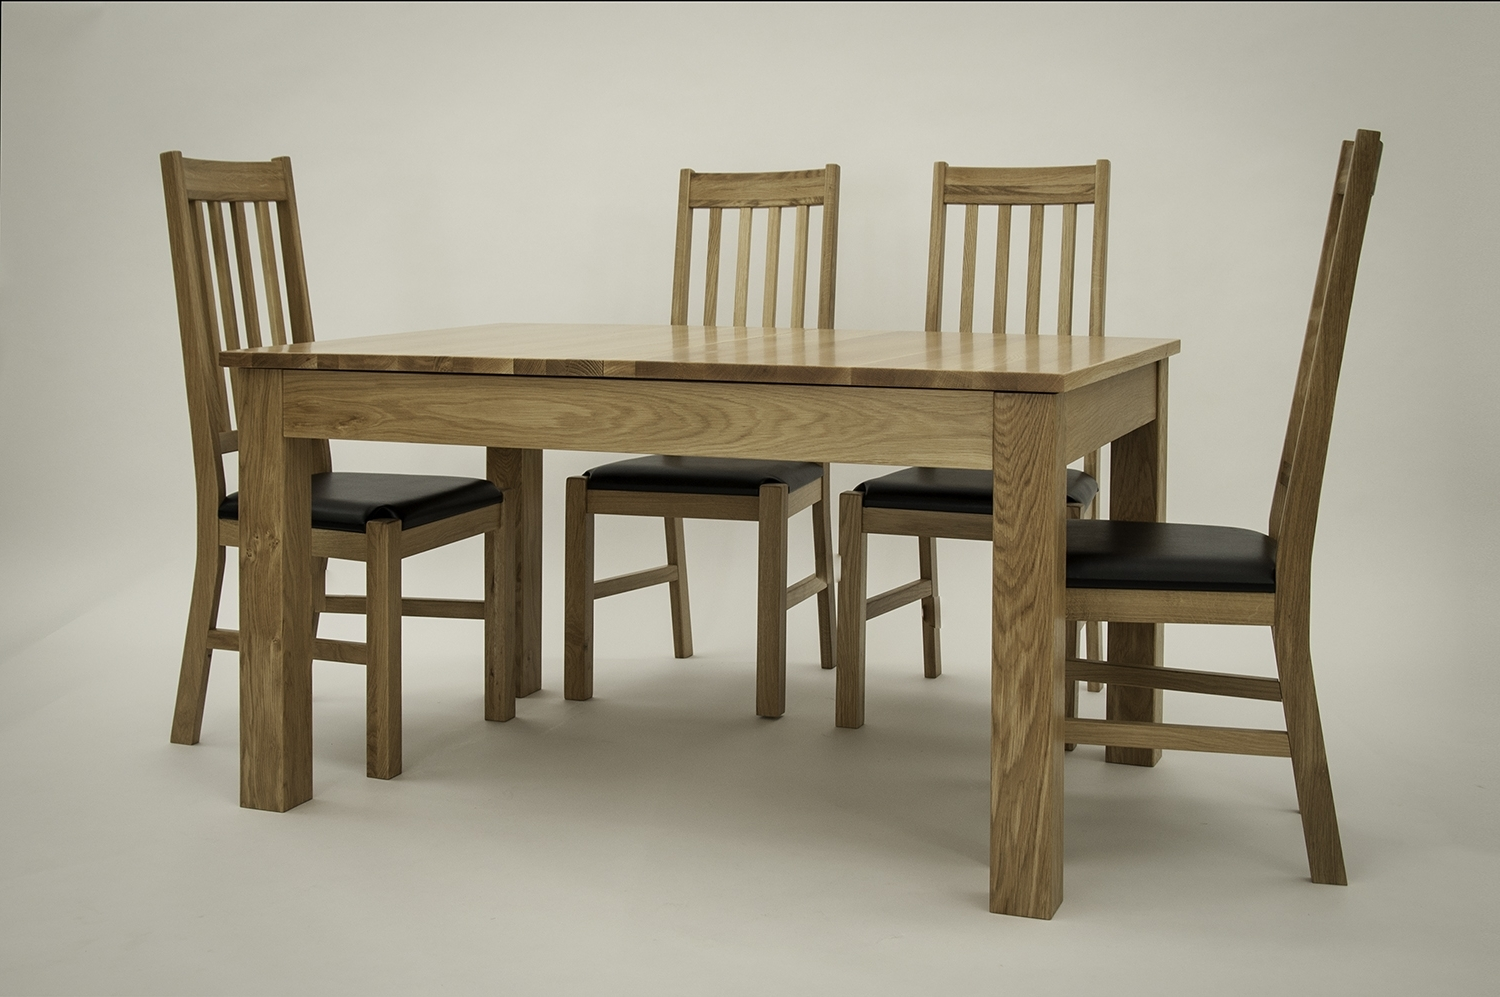 Extending Oak Dining Table Set With 6 Or 8 Chairs, Oak Extending Inside Popular Extending Dining Tables And 8 Chairs (Gallery 23 of 25)